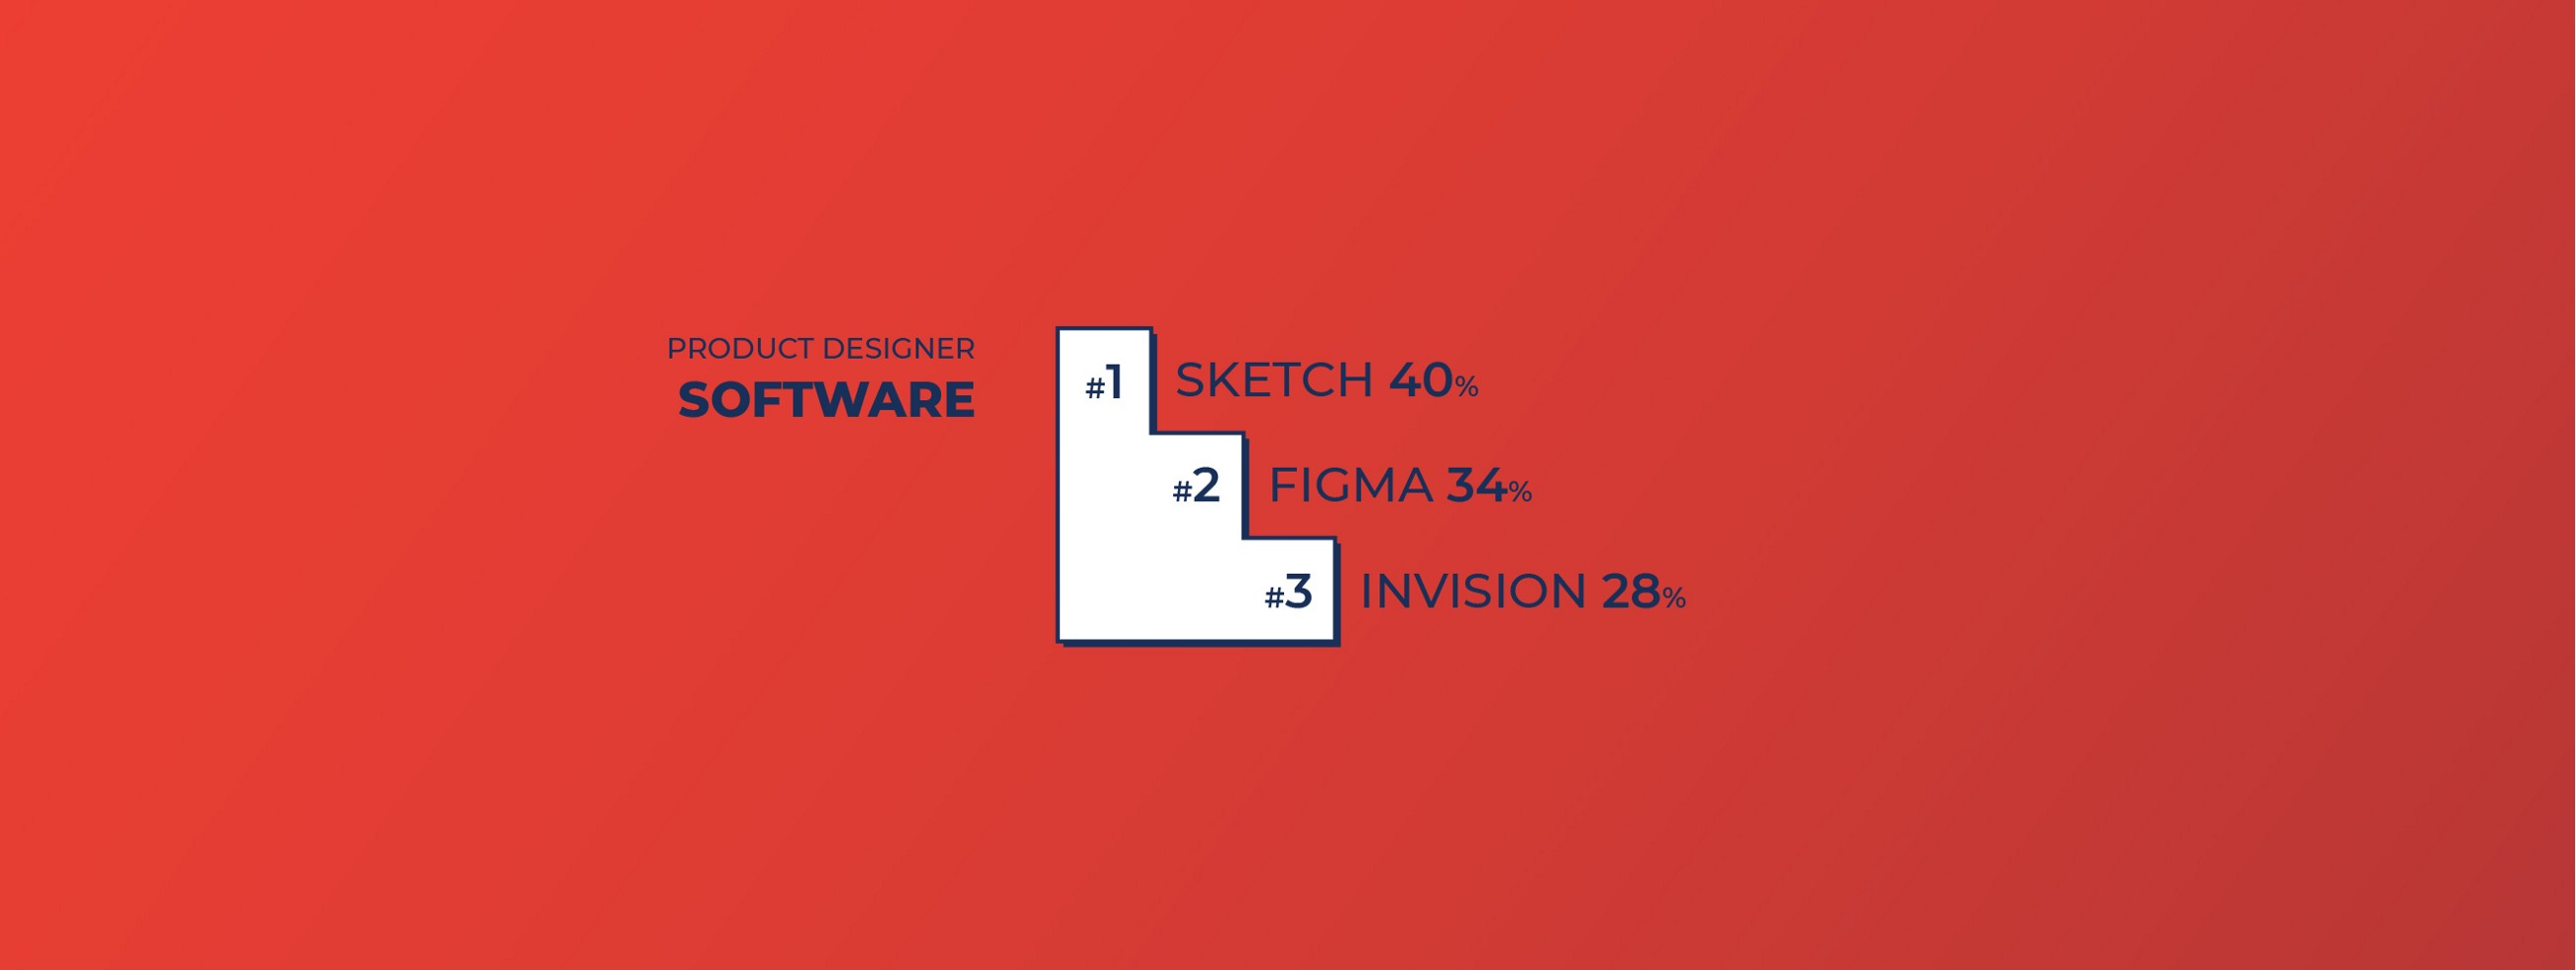 Top 3 Software for Product Designers: #1 Sketch, #2 Figma and #3 Invision